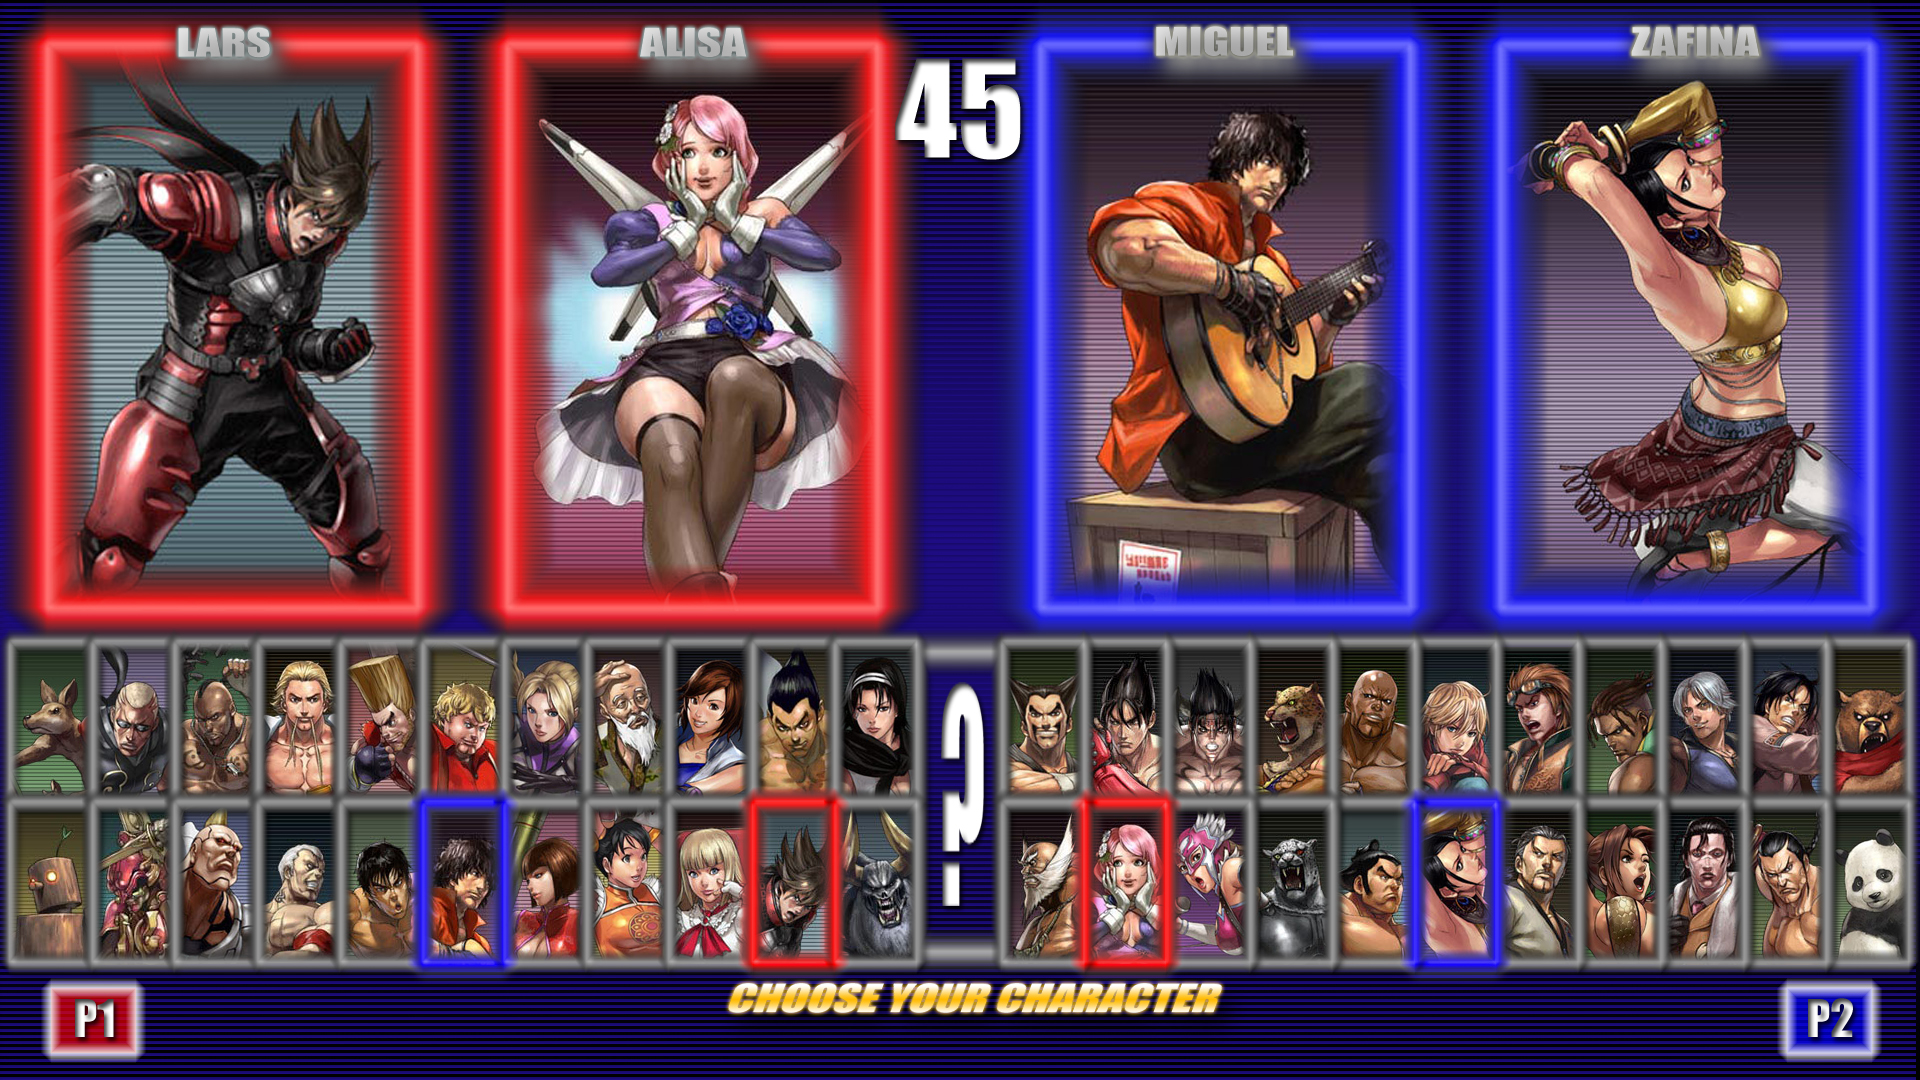 mugen how to get chracters in the character select screen